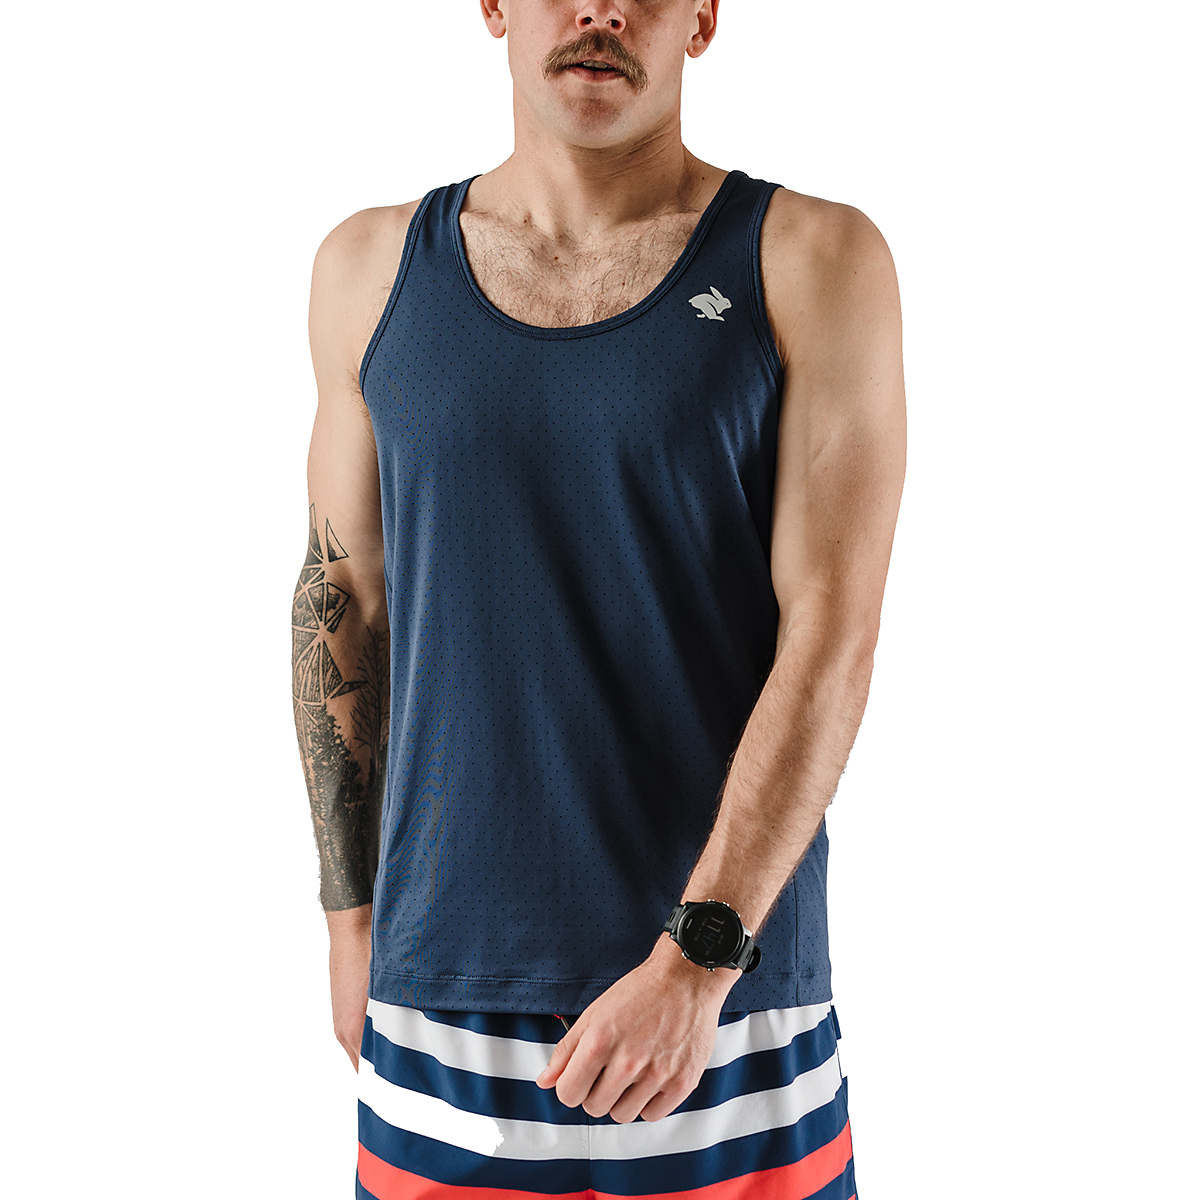 Men's Rabbit Welcome To The Gun Show Perf Tank, , large, image 1